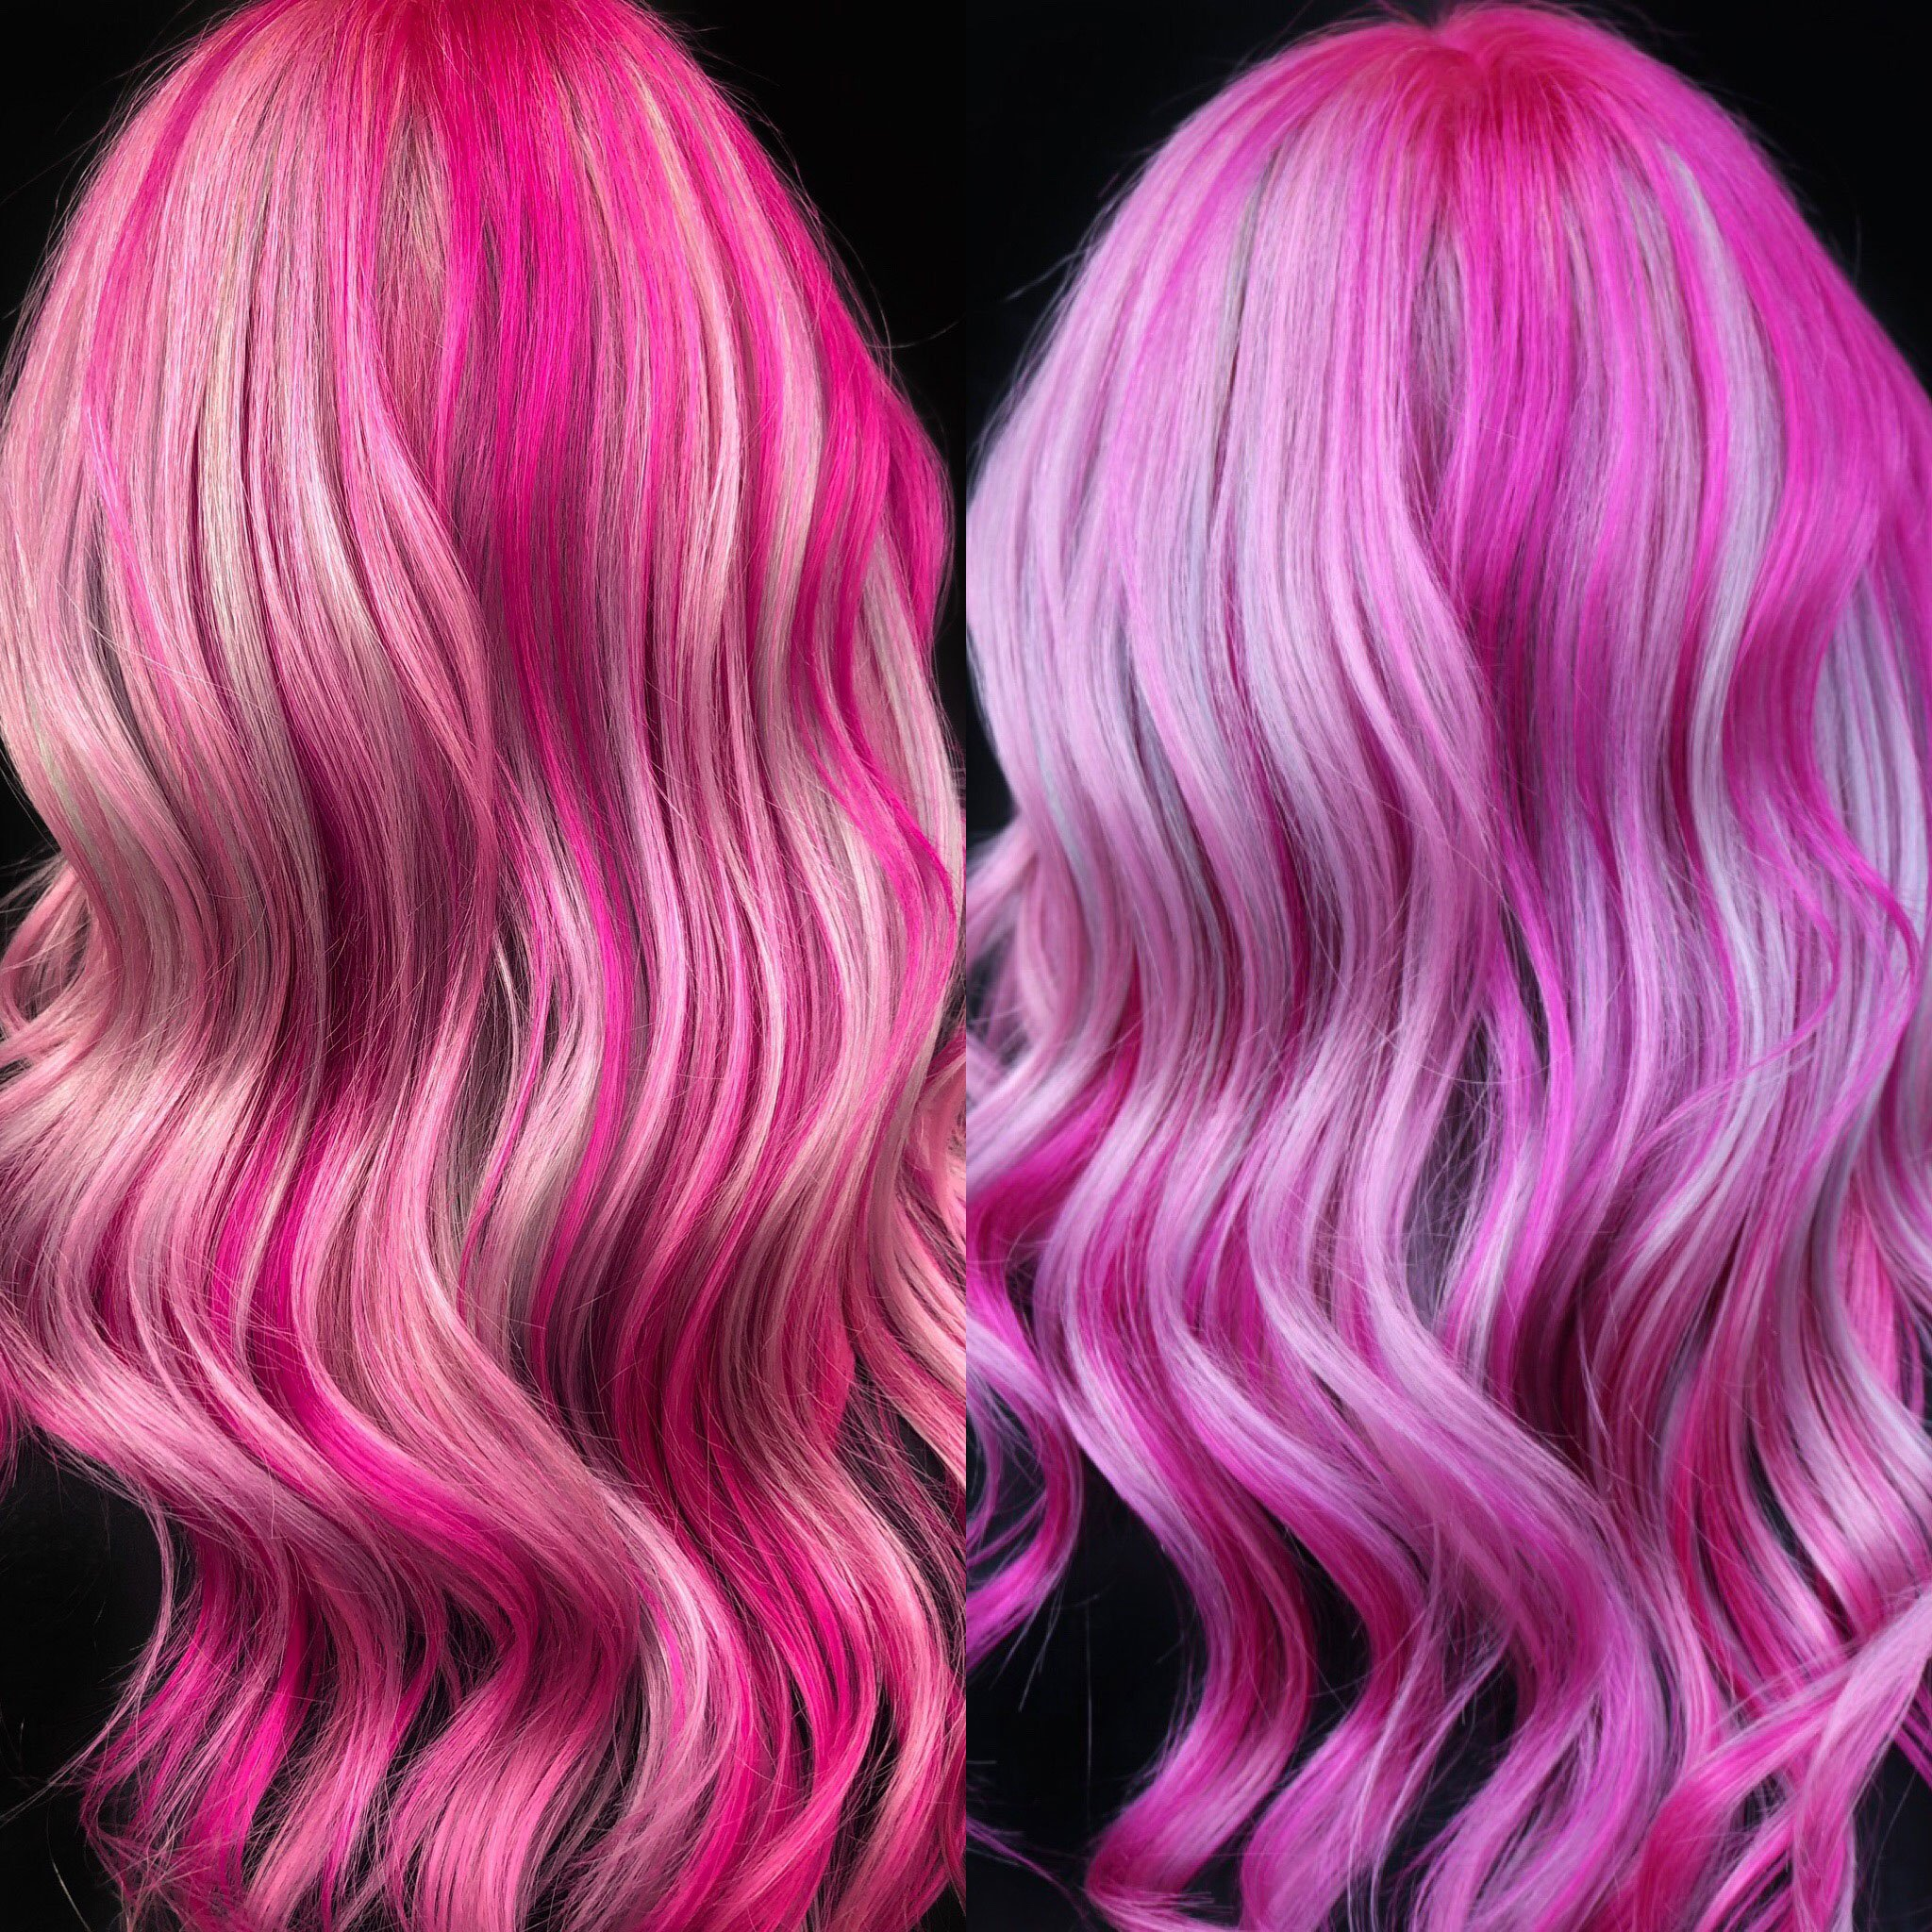 """Left: iPhone 8 Plus. Right: Canon Rebel T6i. Same outdoor natural lighting. In the image here, the color is Menor's signature pinwheel placement technique using Pulp Riot colors in mixes of Candy and Cupid, Blush, and Mercury and Nevermore. """"I finished the look with Brazilian Bond Builder locked in spray as well, as Bumble and bumble hairdresser Oil Spray and Styling Creme. Styled with my Fhi curling iron."""""""